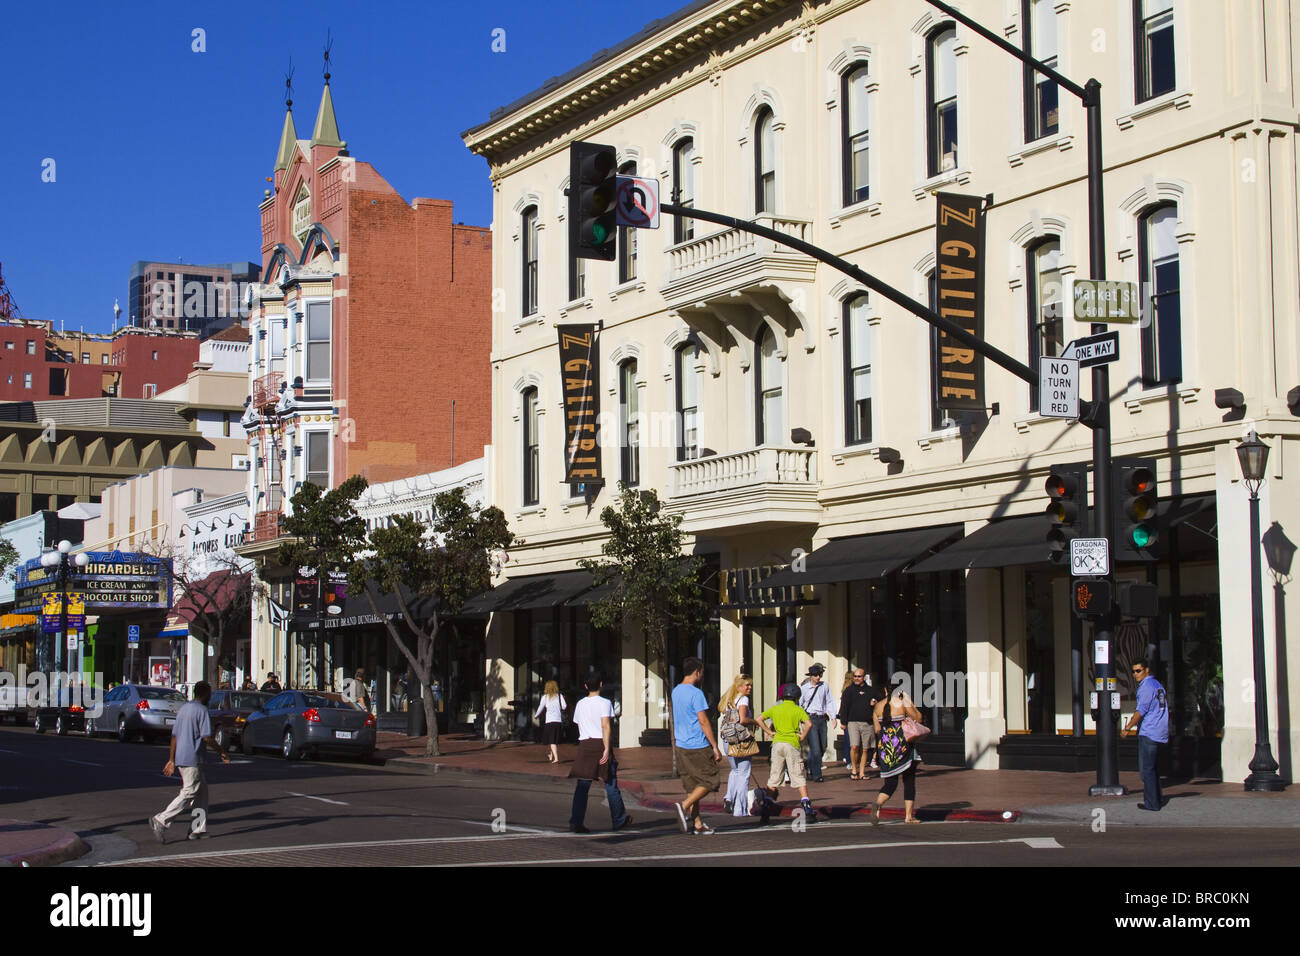 Stores on Fifth Avenue in the Gaslamp Quarter, San Diego, California, USA - Stock Image